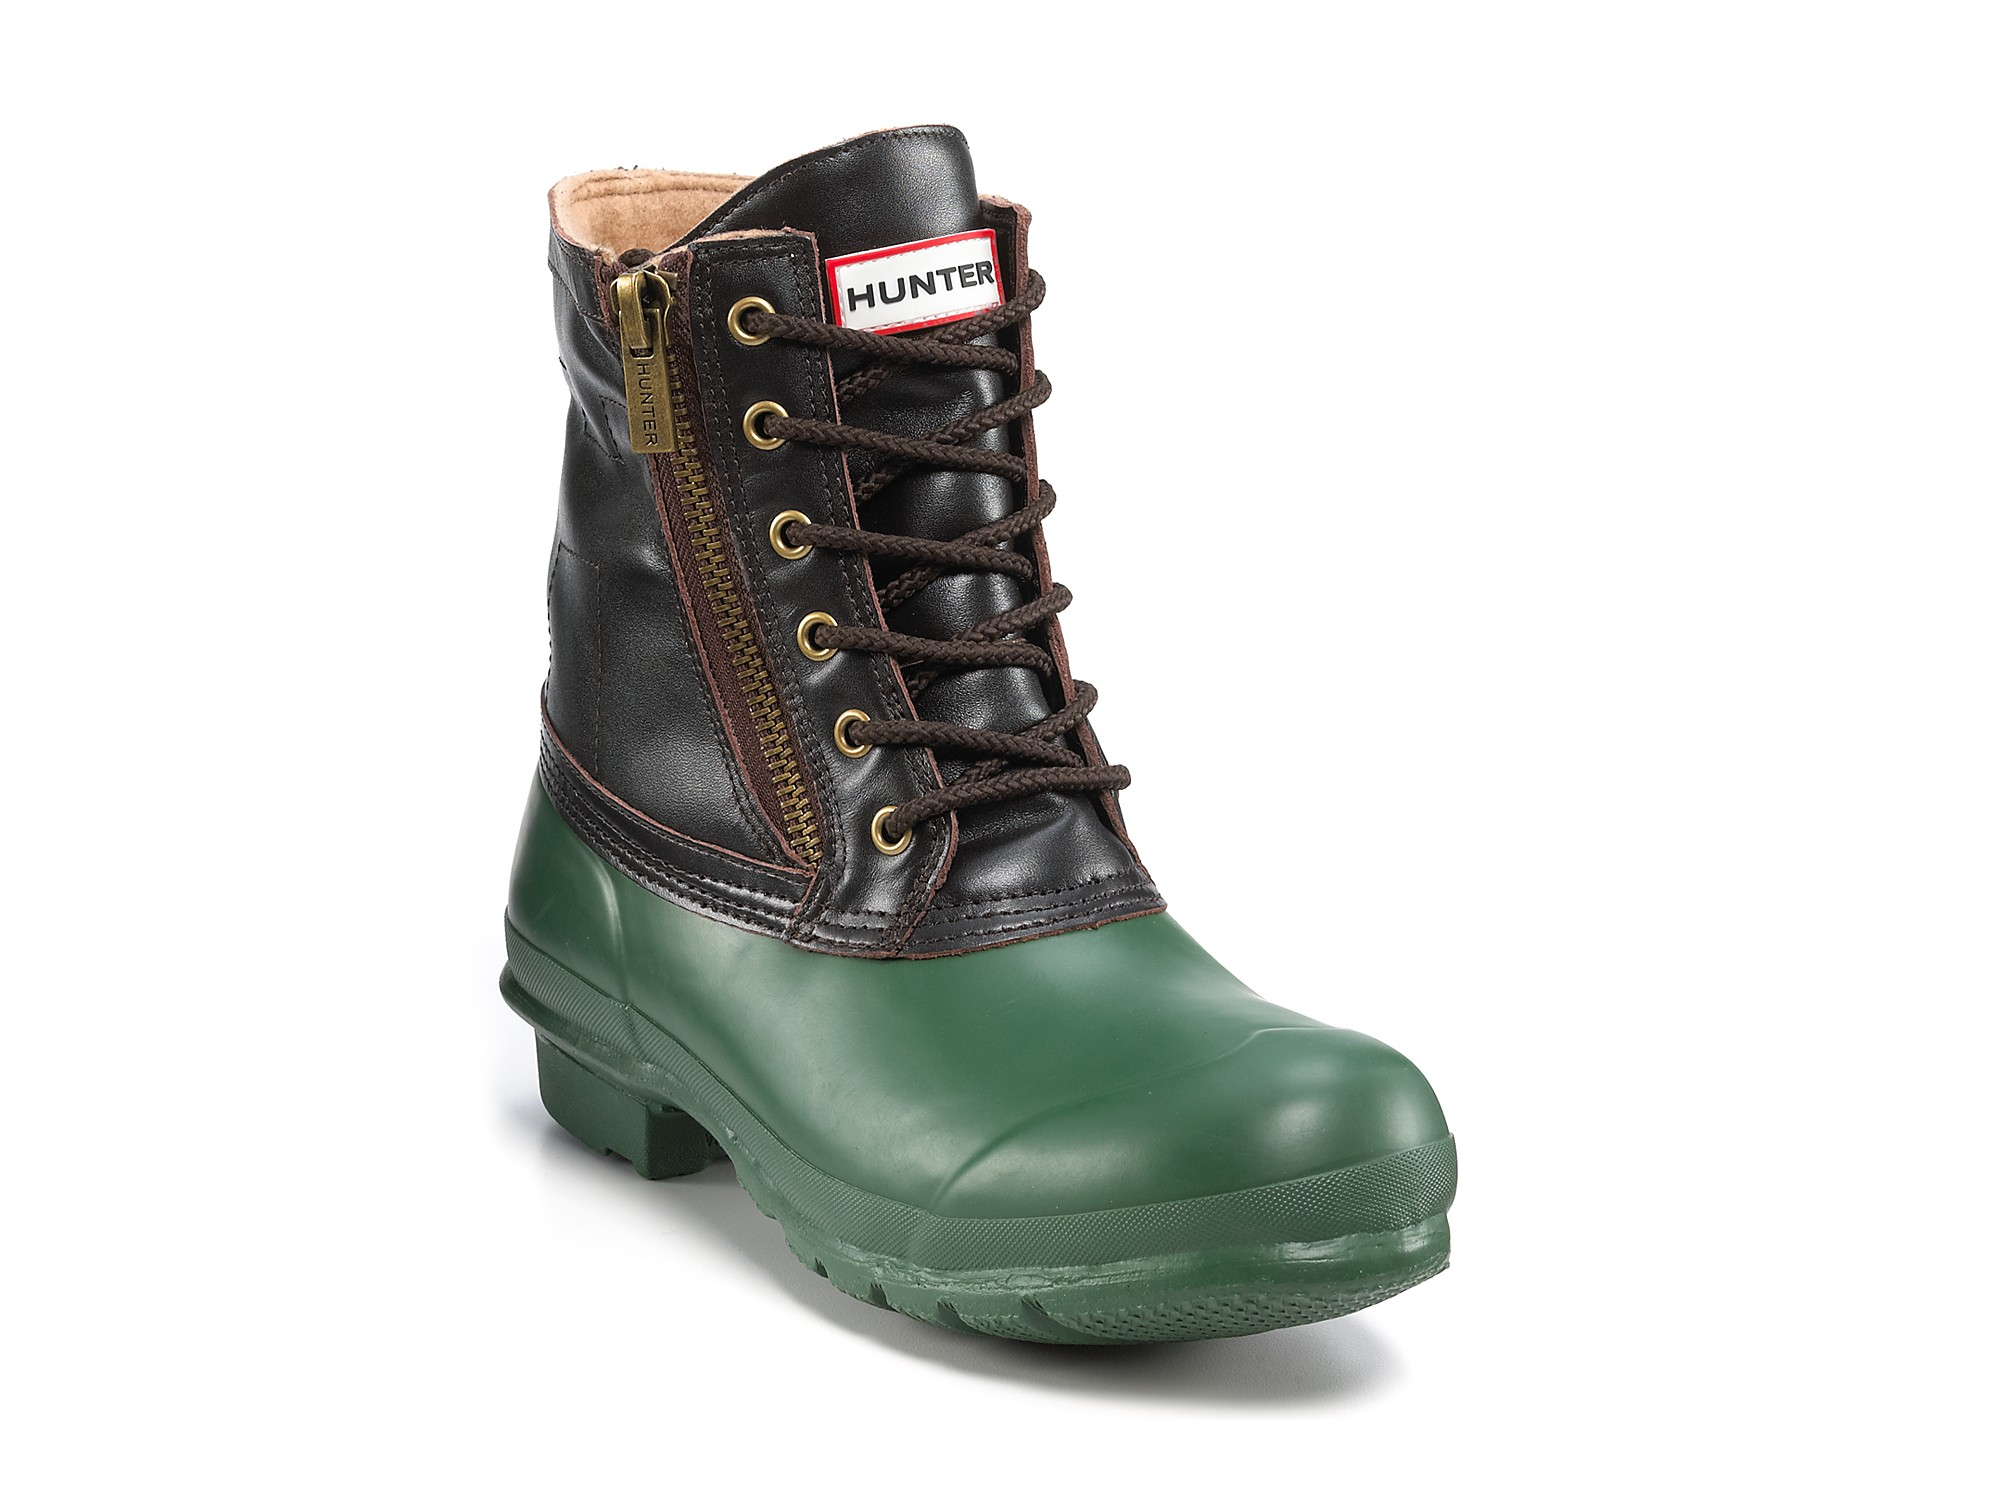 Lyst Hunter Kerrera Rubber Lace Up Boots In Green For Men